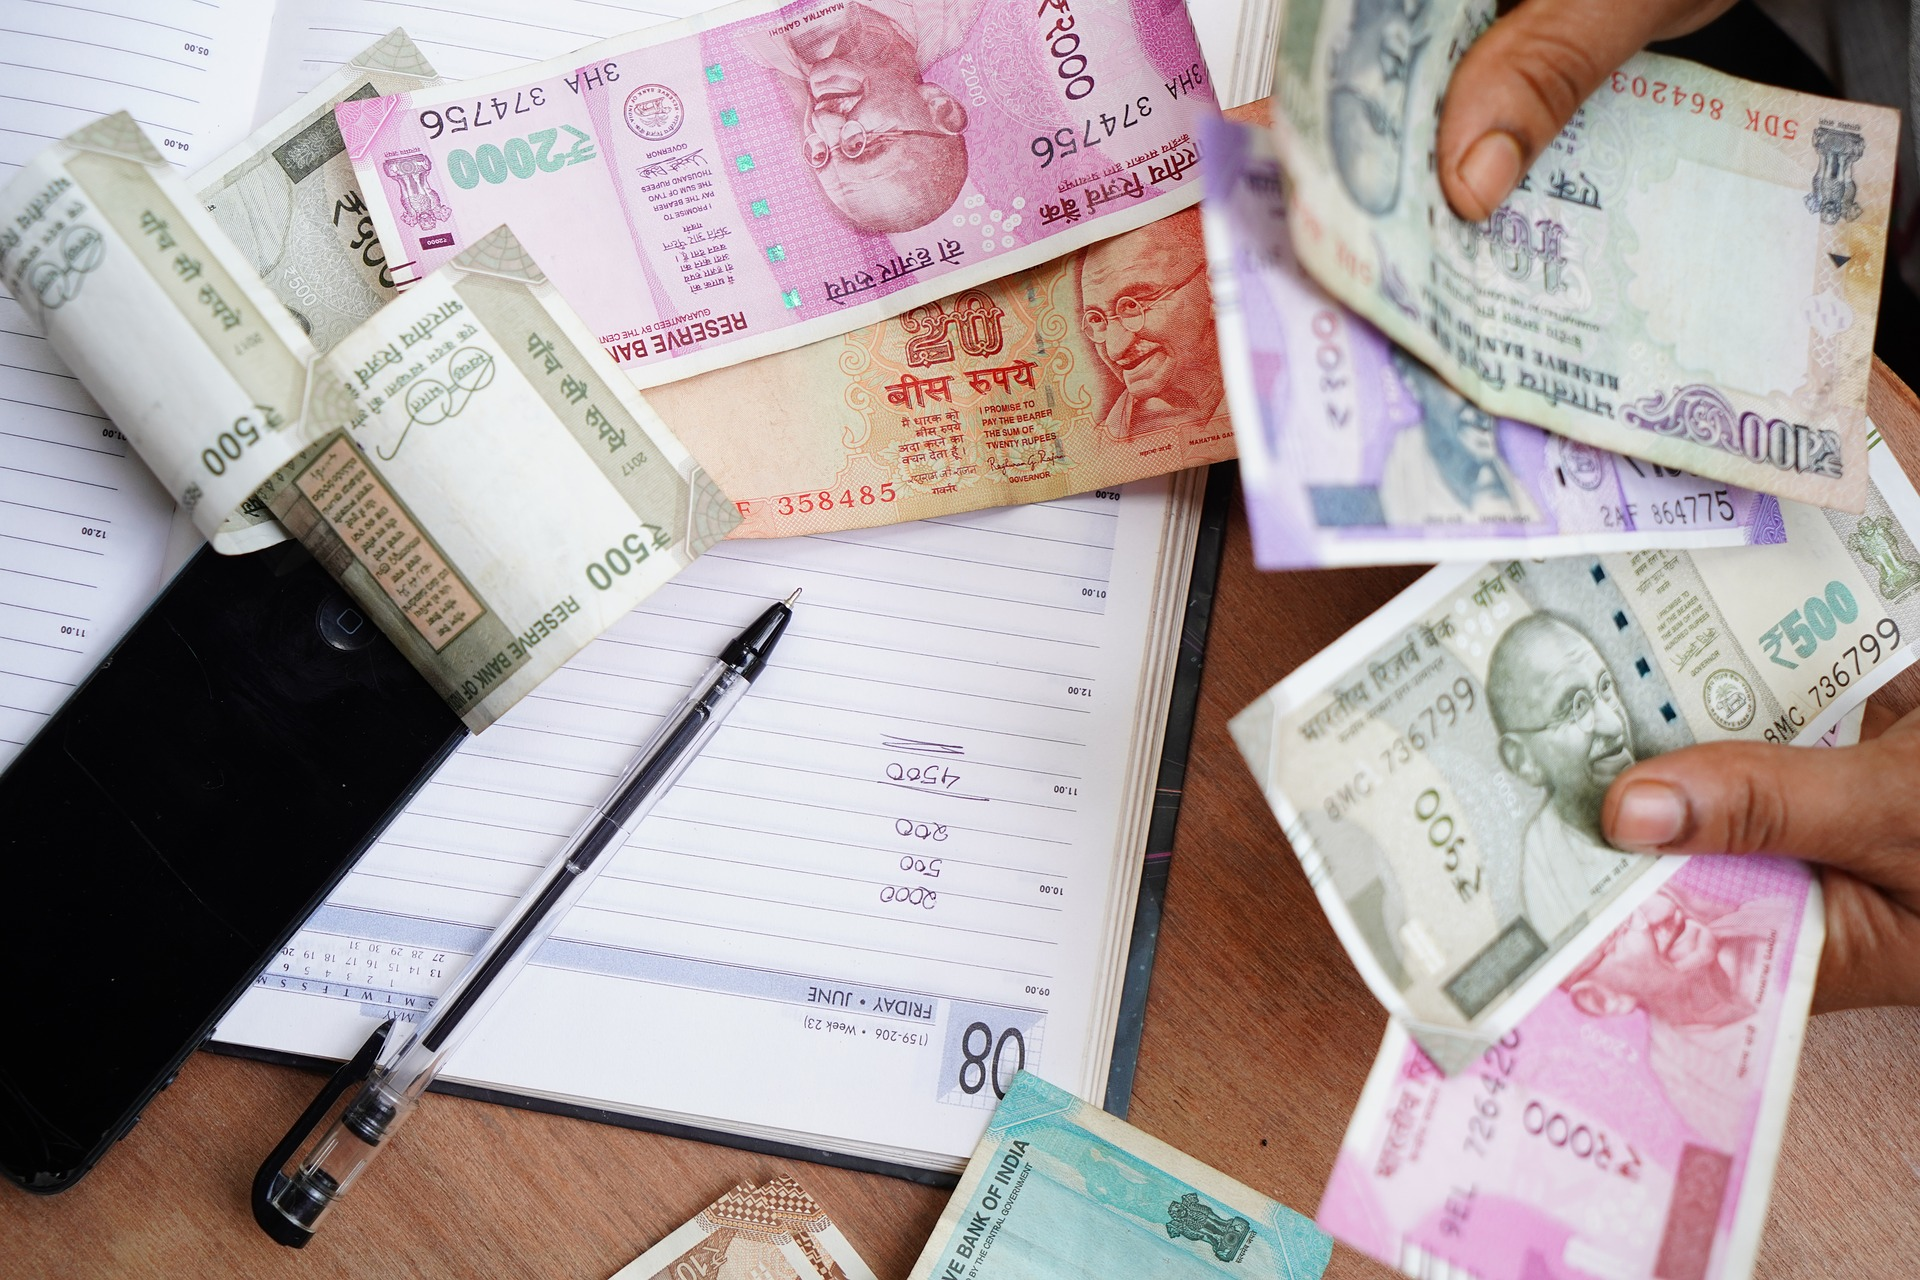 War on Cash in India but Cash is still King